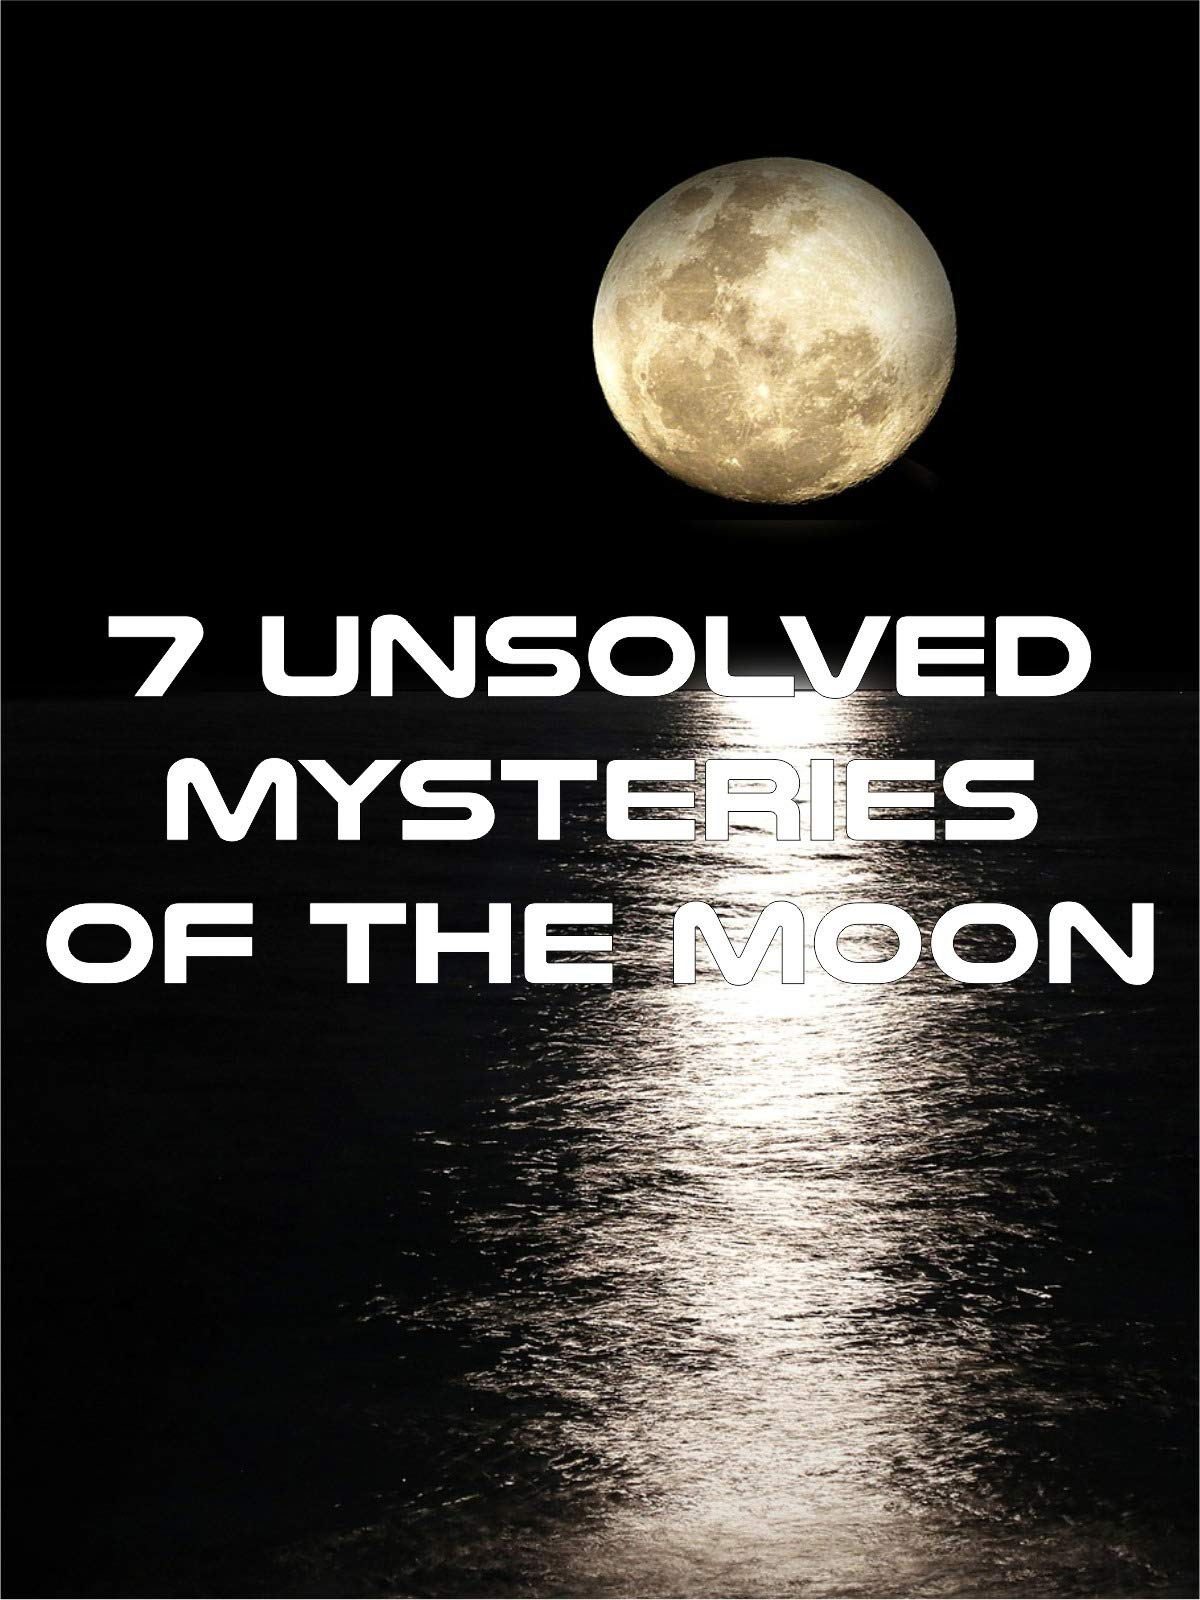 7 Unsolved Mysteries of The Moon